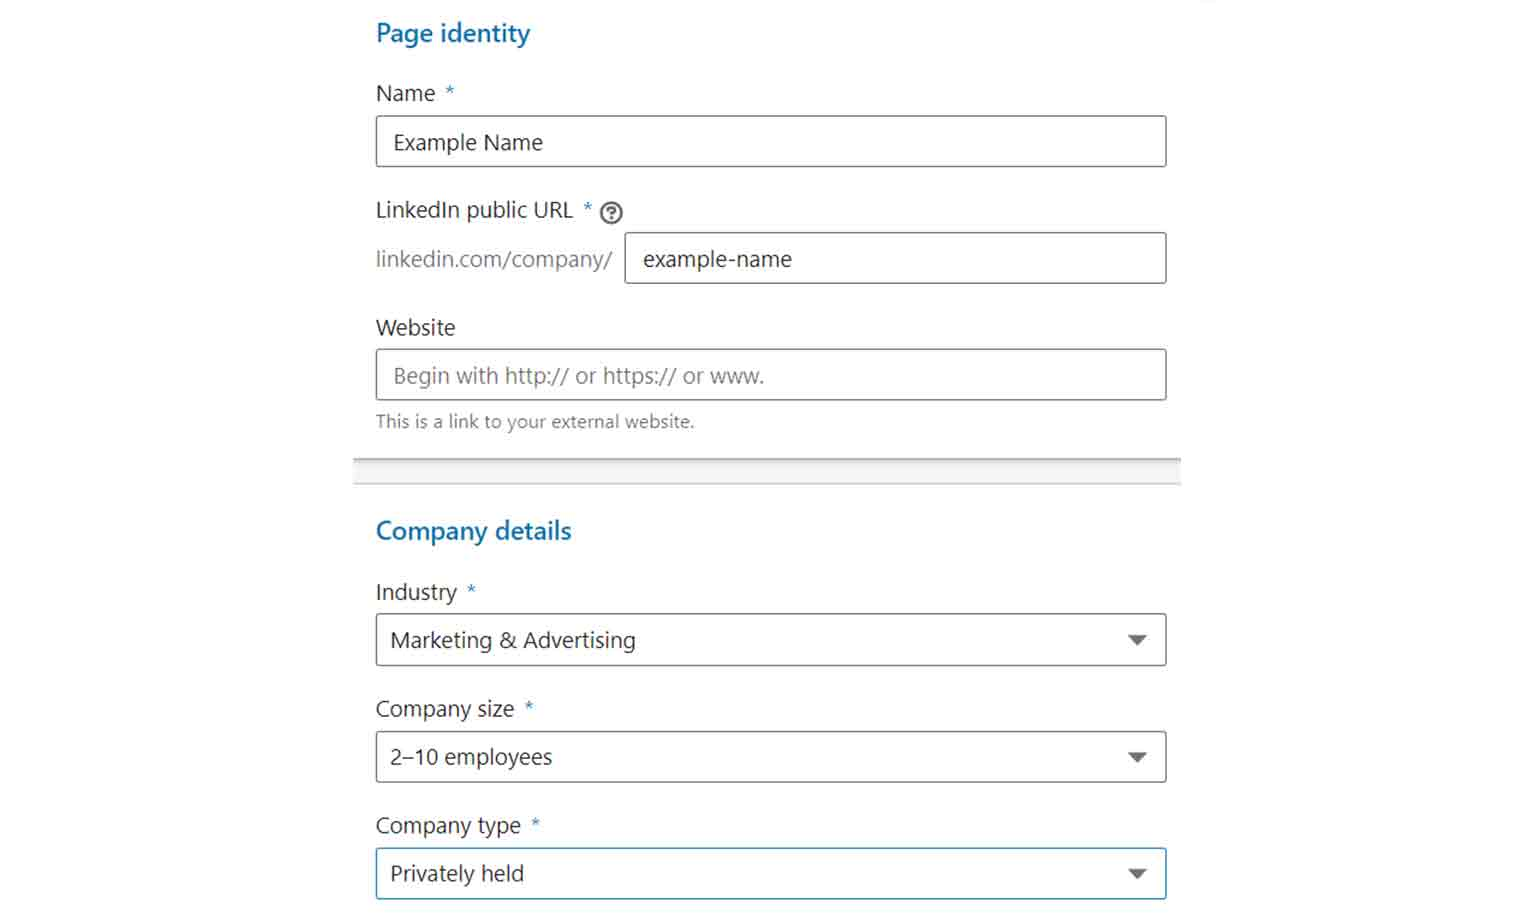 Fill out the essential details about your LinkedIn page.